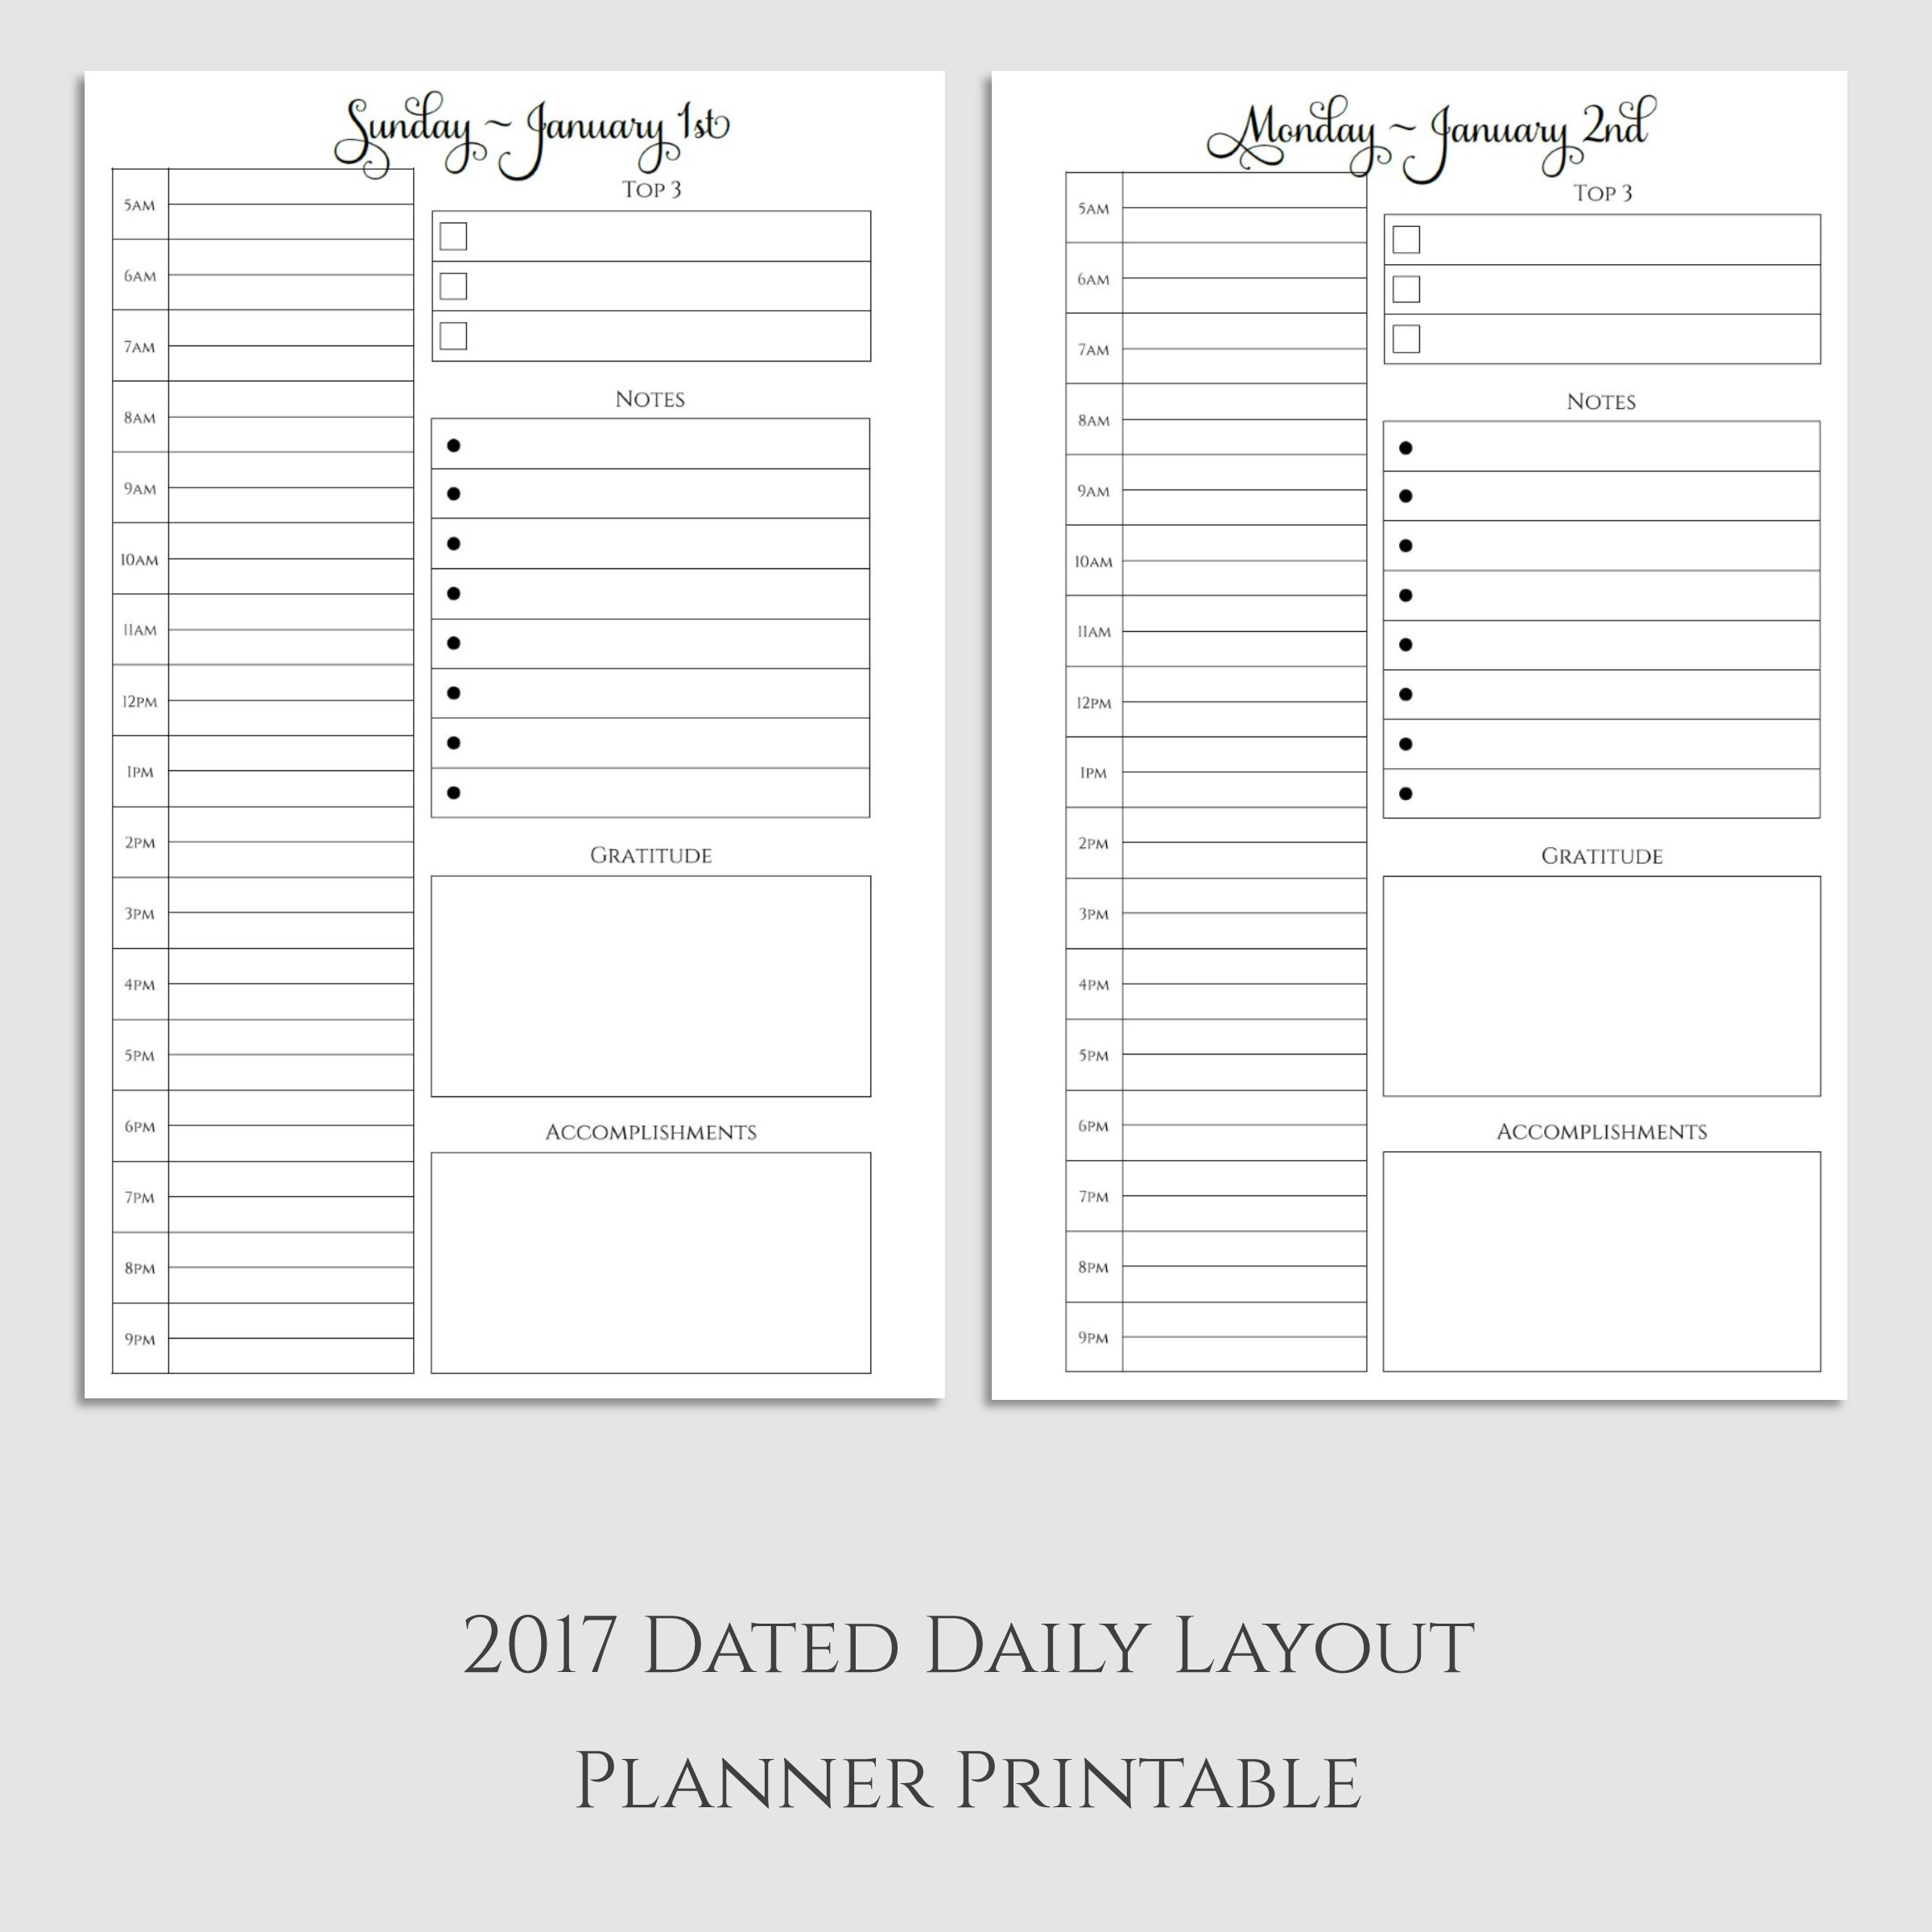 2017 Daily Planner Printable with Gratitude & Accomplishments